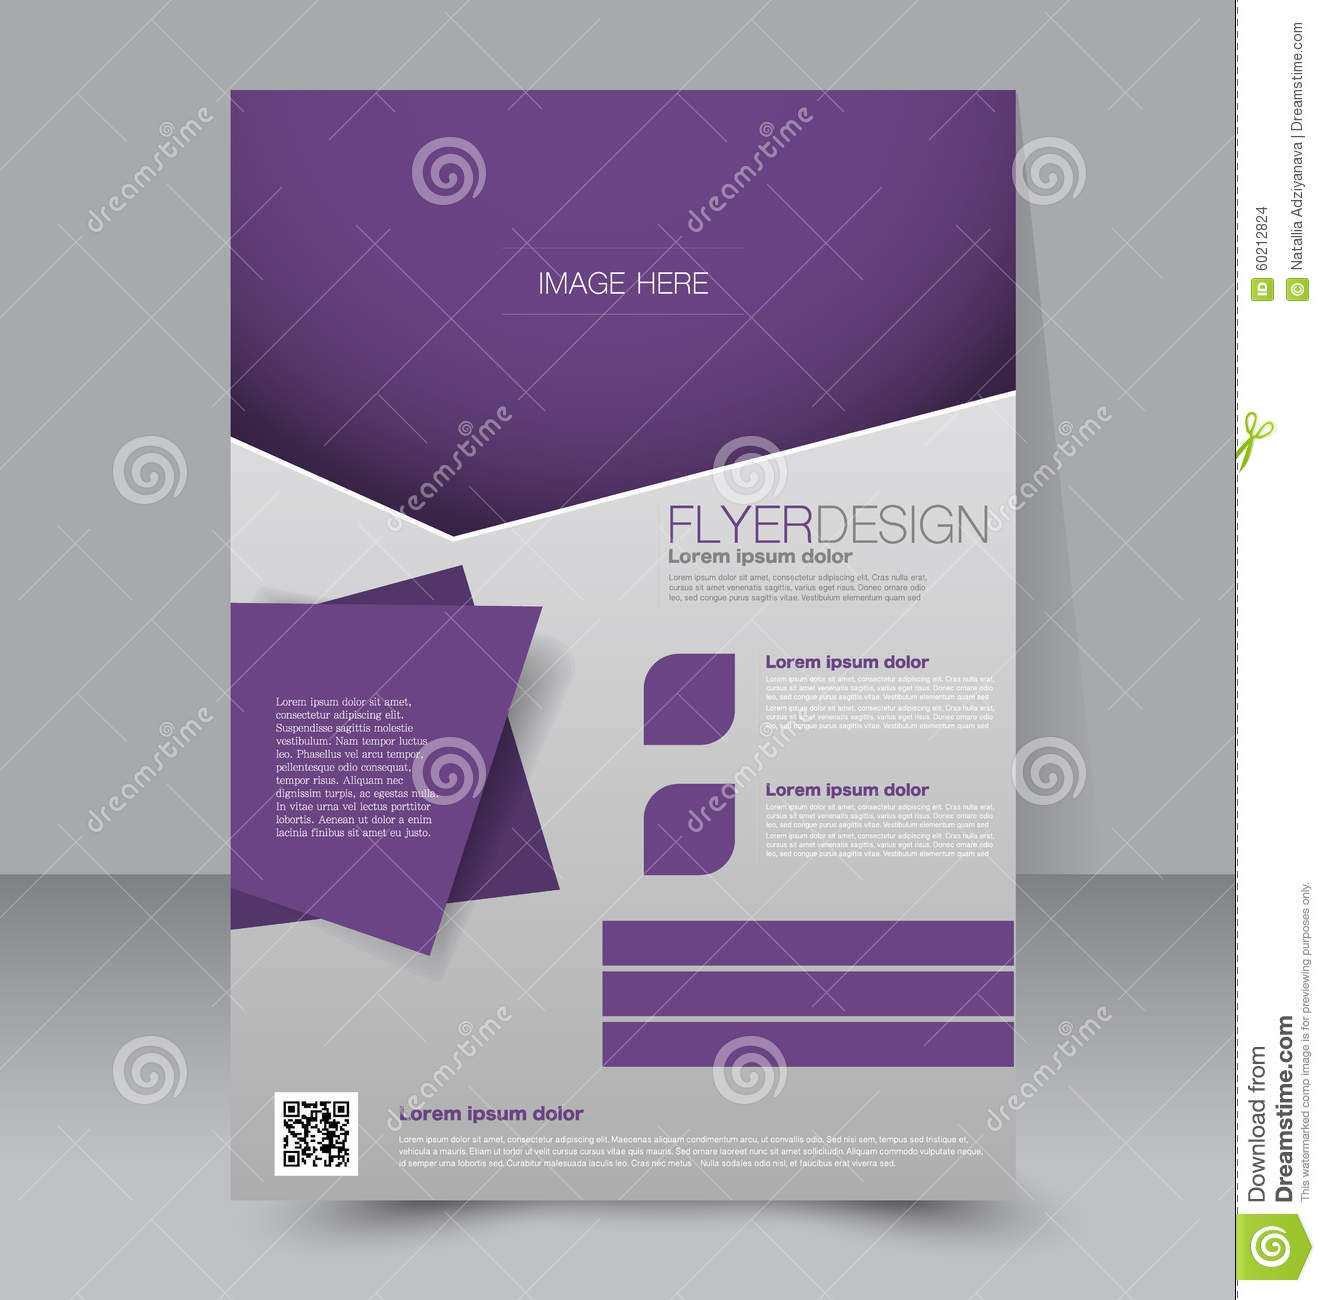 Flyer Template Business Brochure Editable A4 Poster For Design Education Presentation Website Magazine Cover Purple Color